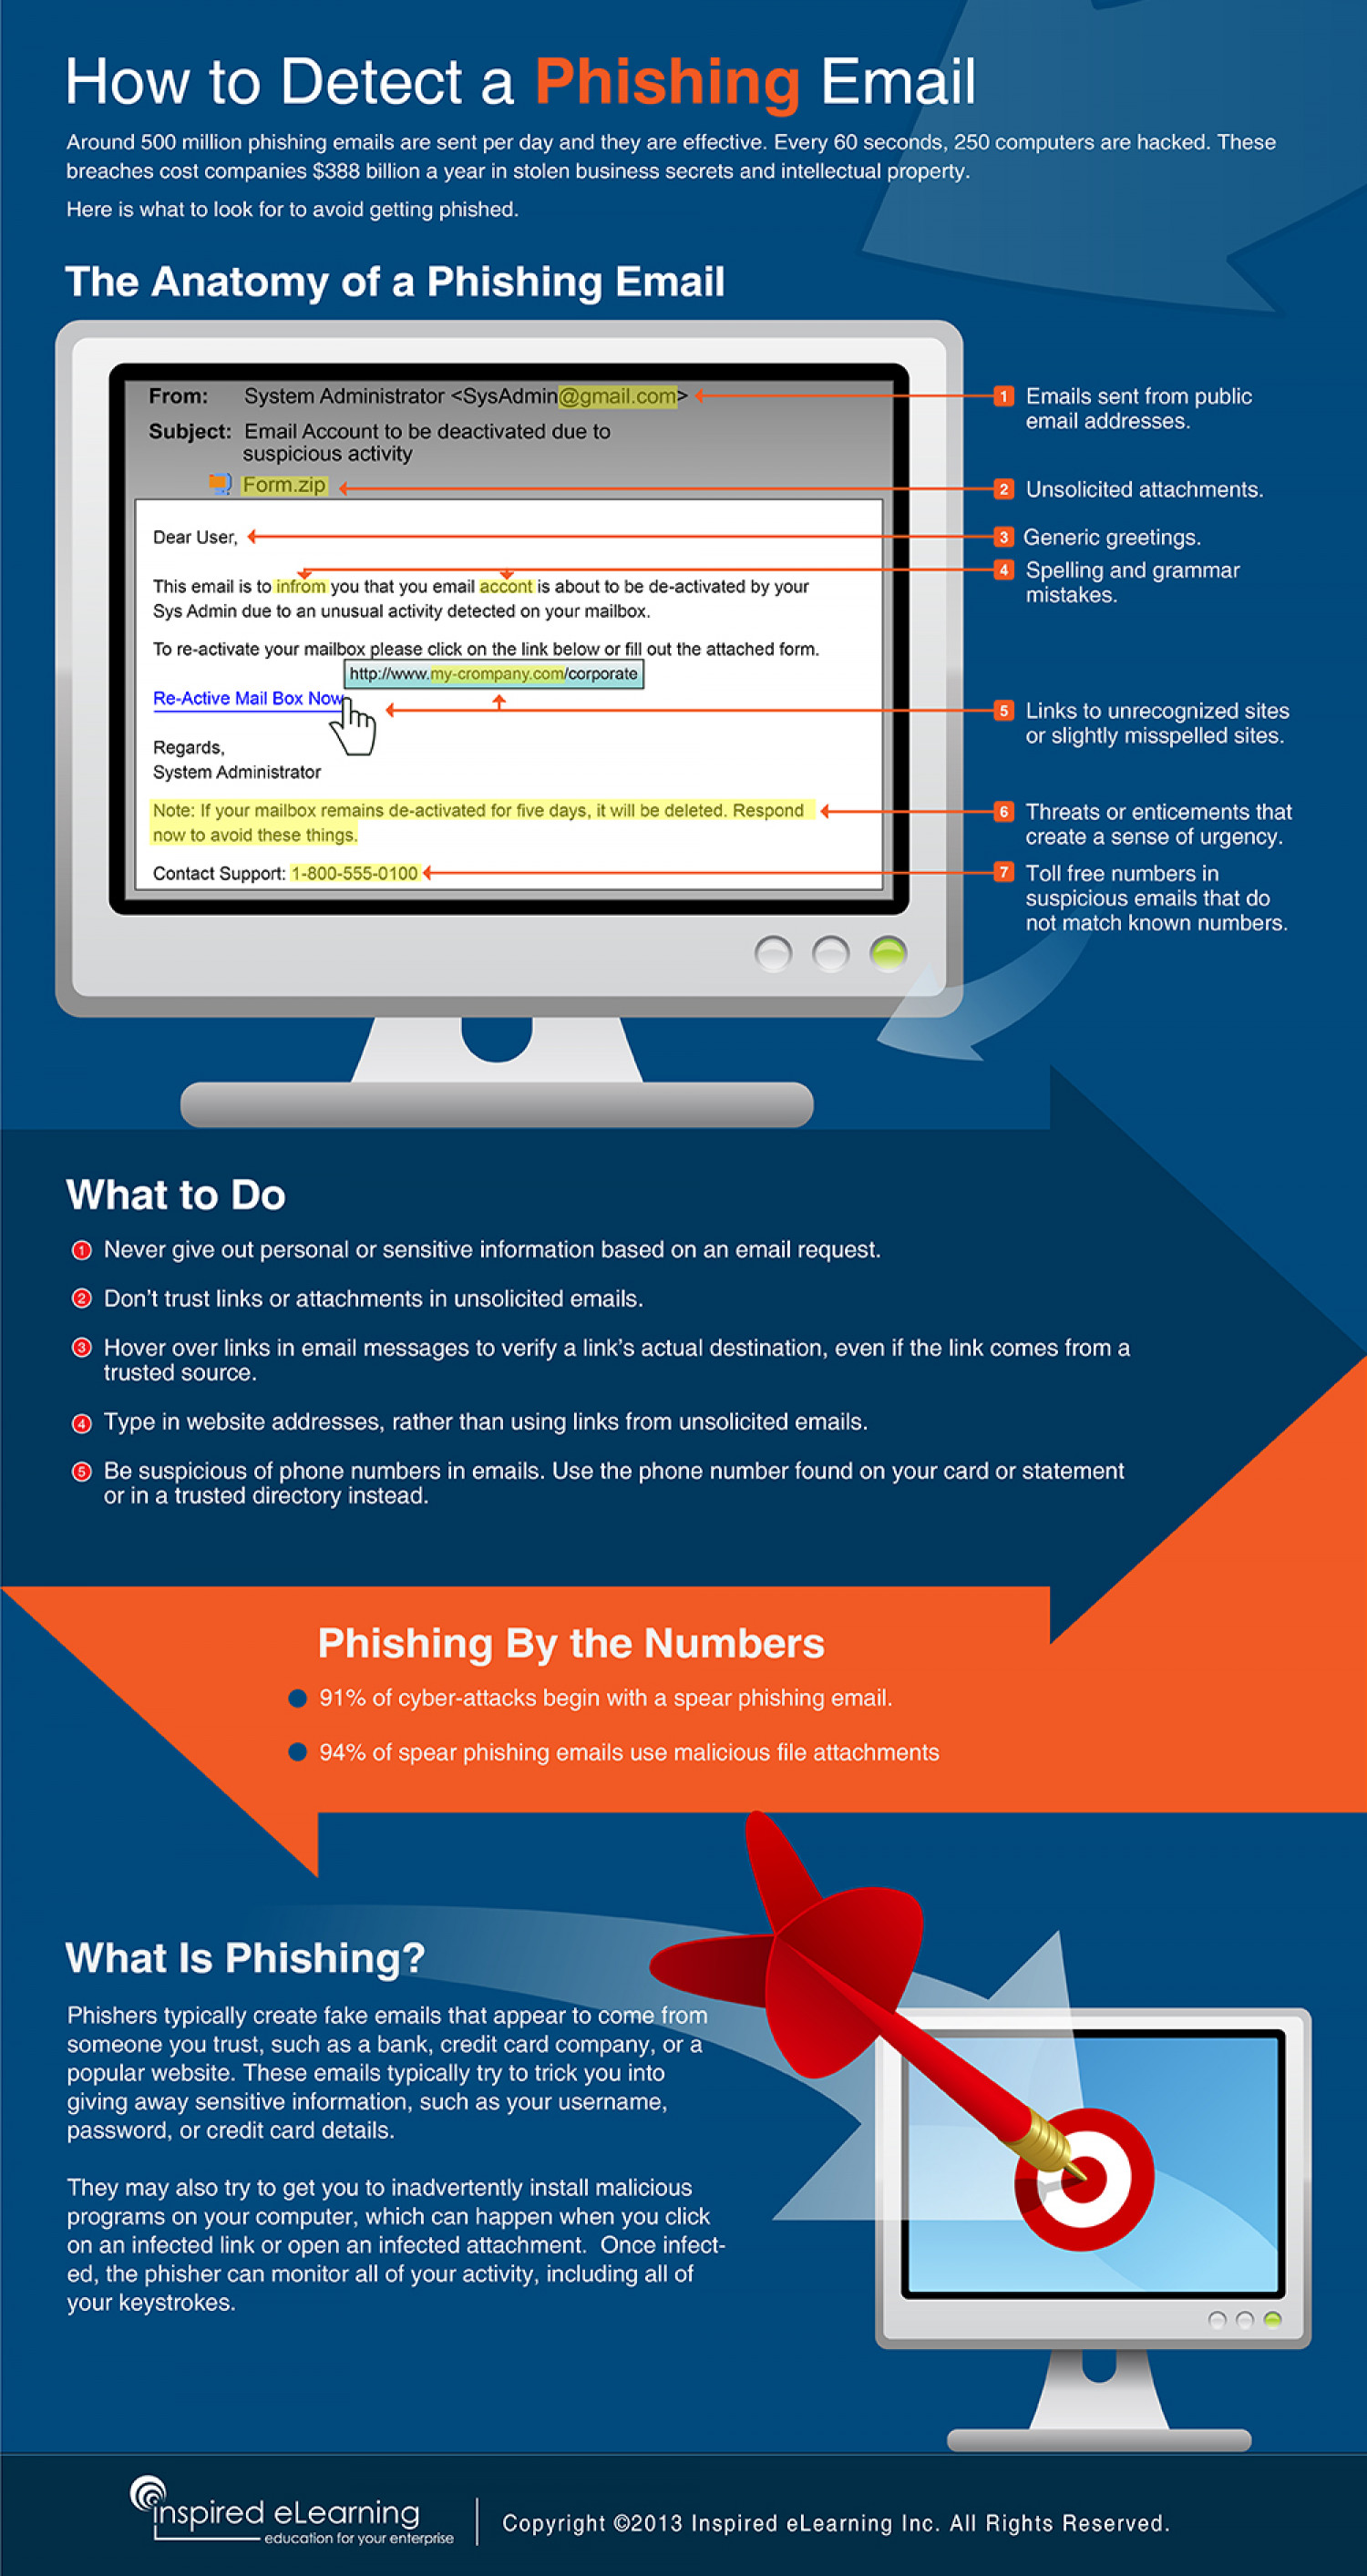 How to Detect a Phishing Email Infographic